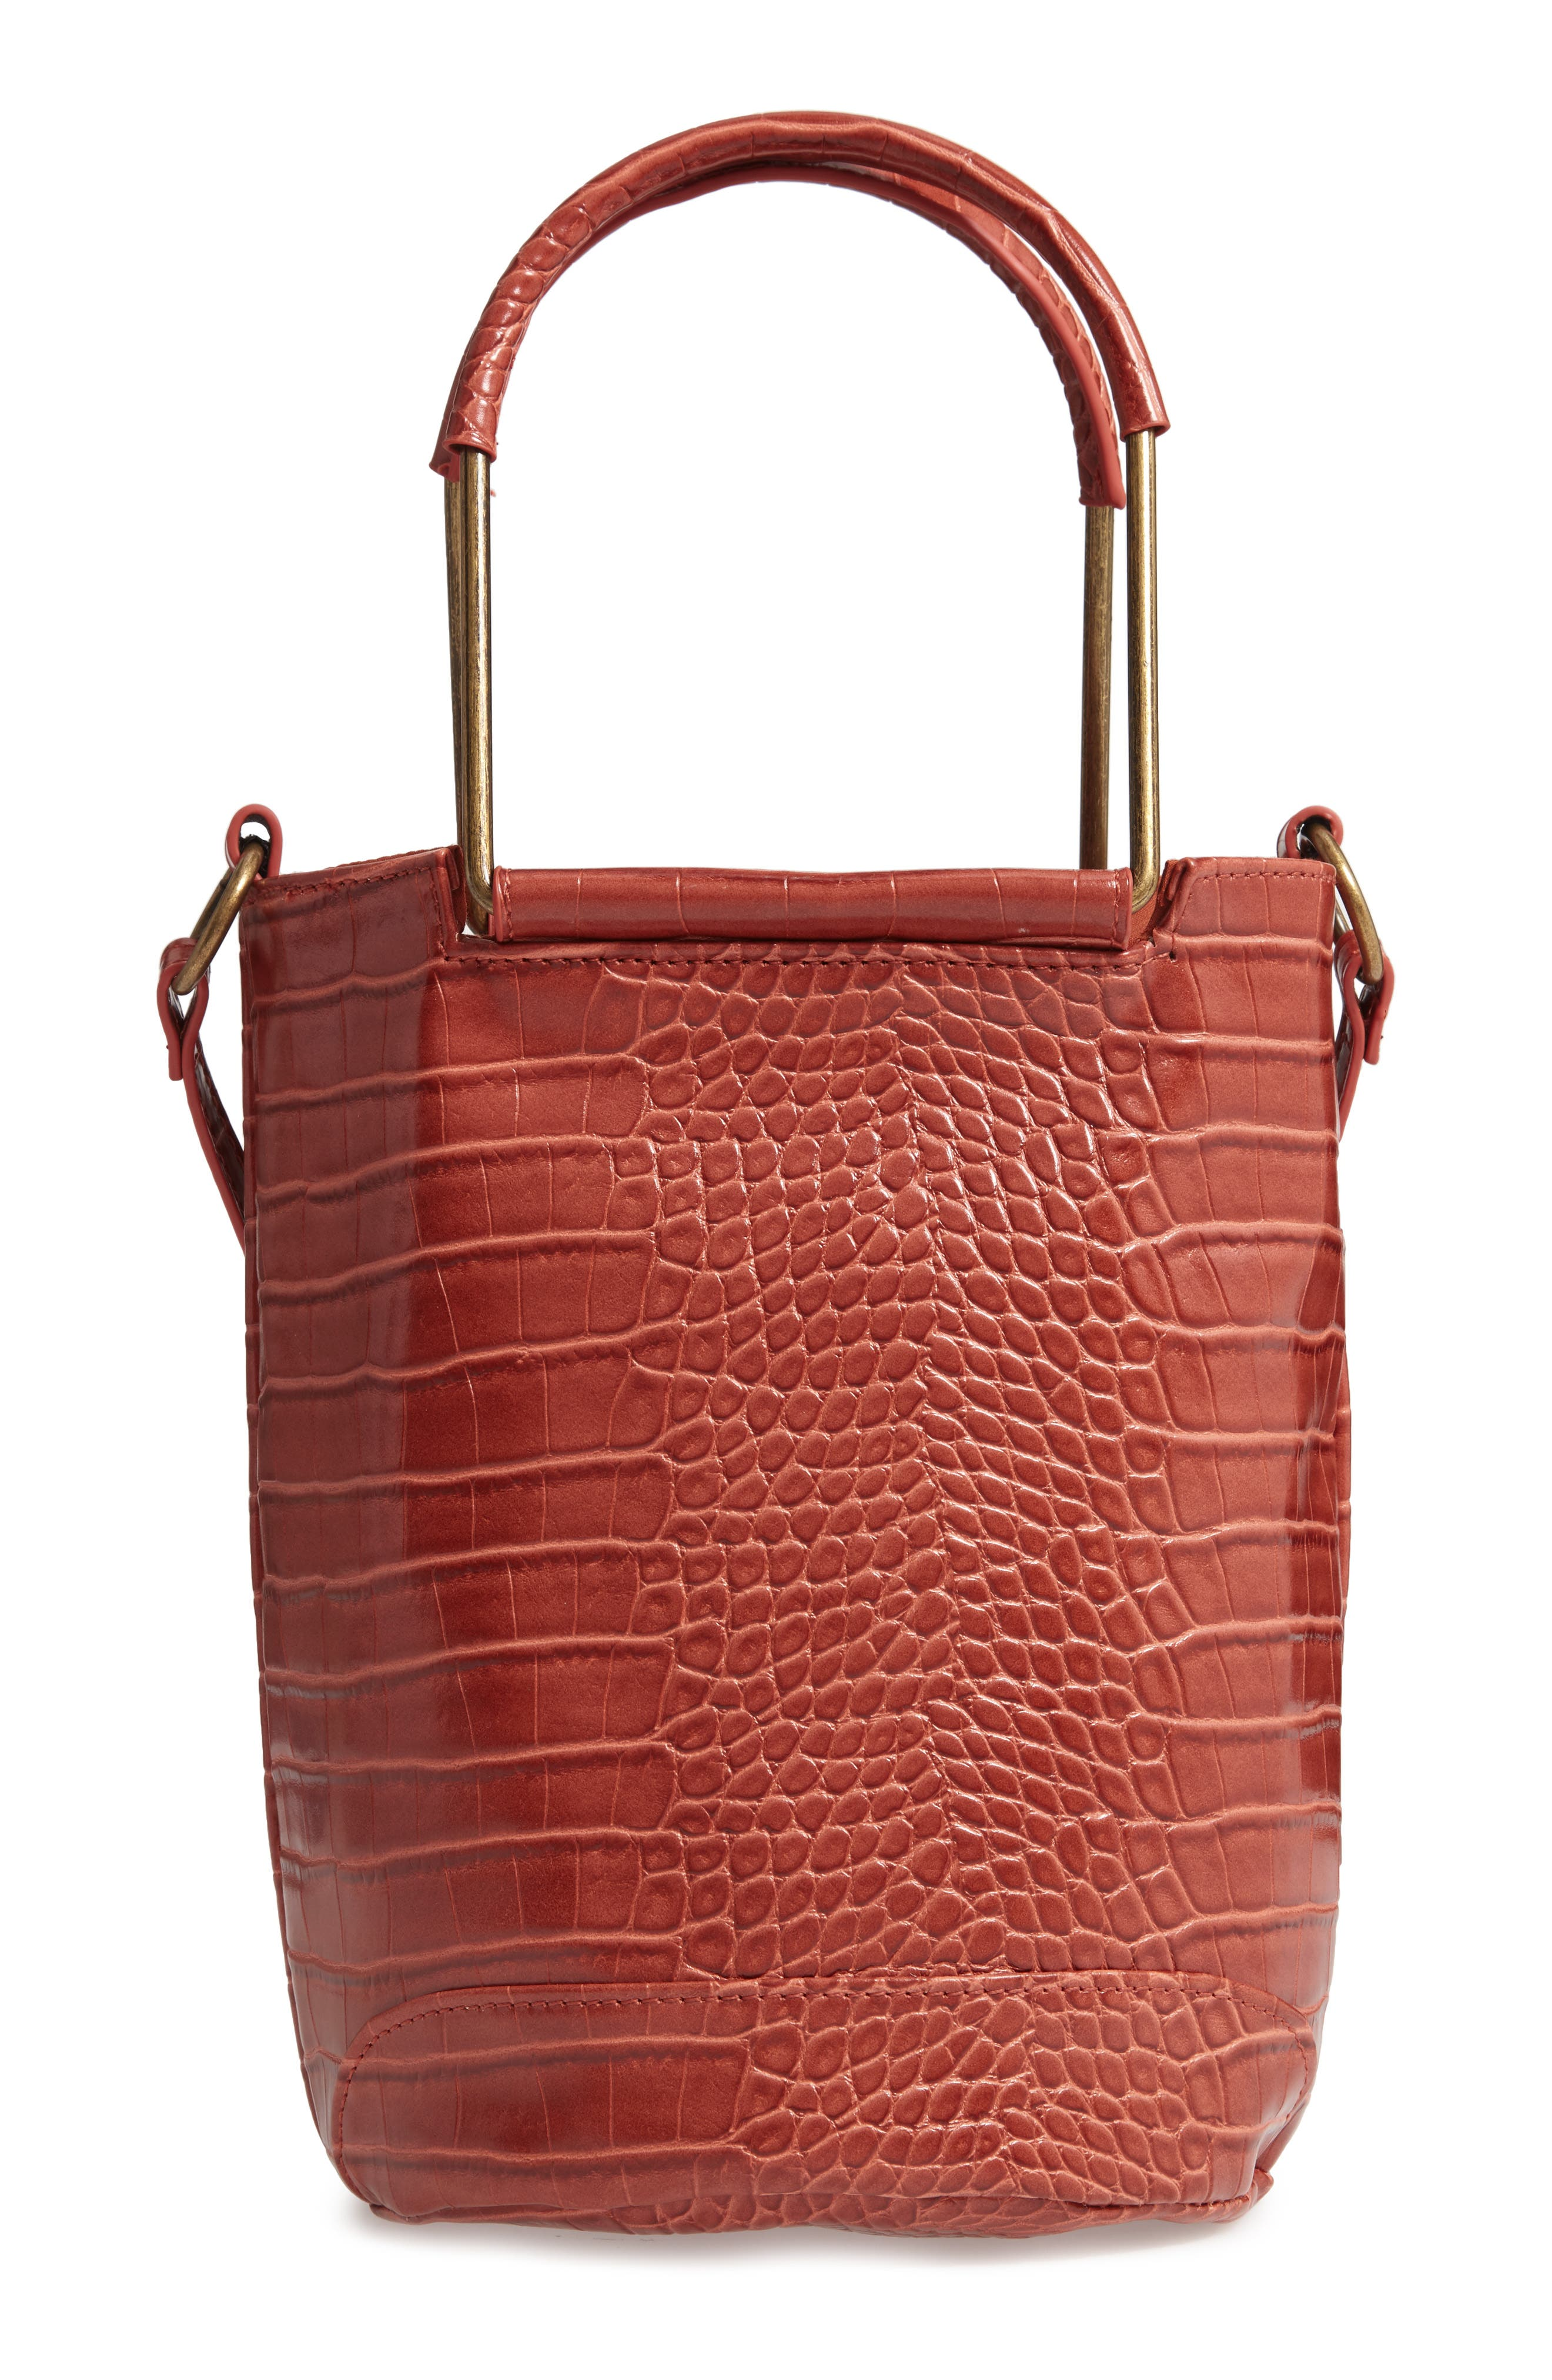 T-SHIRT & JEANS, Croc Embossed Faux Leather Tote, Main thumbnail 1, color, 810